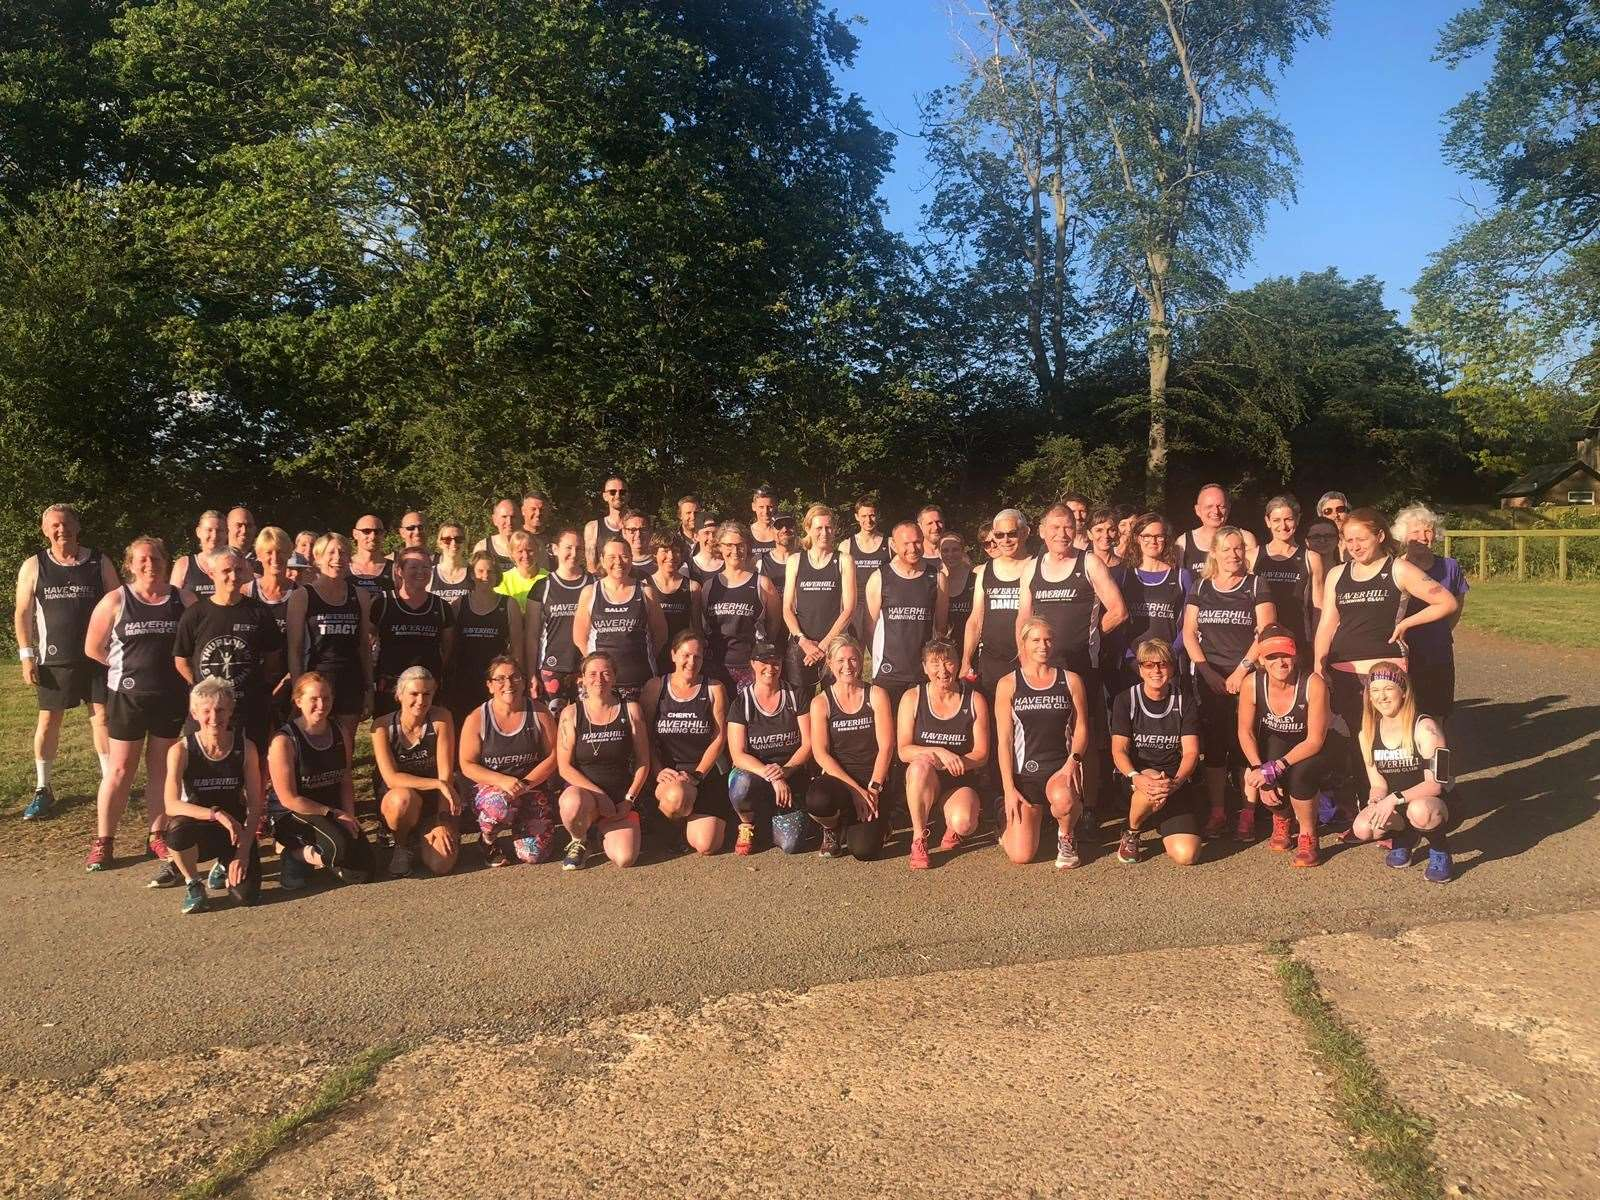 Haverhill Running Club - 94 runners competed at Newmarket Joggers' Kevin Henry event Thursday, June 6 2019. Female event winner Nicki Davis a HRC runner (12139425)